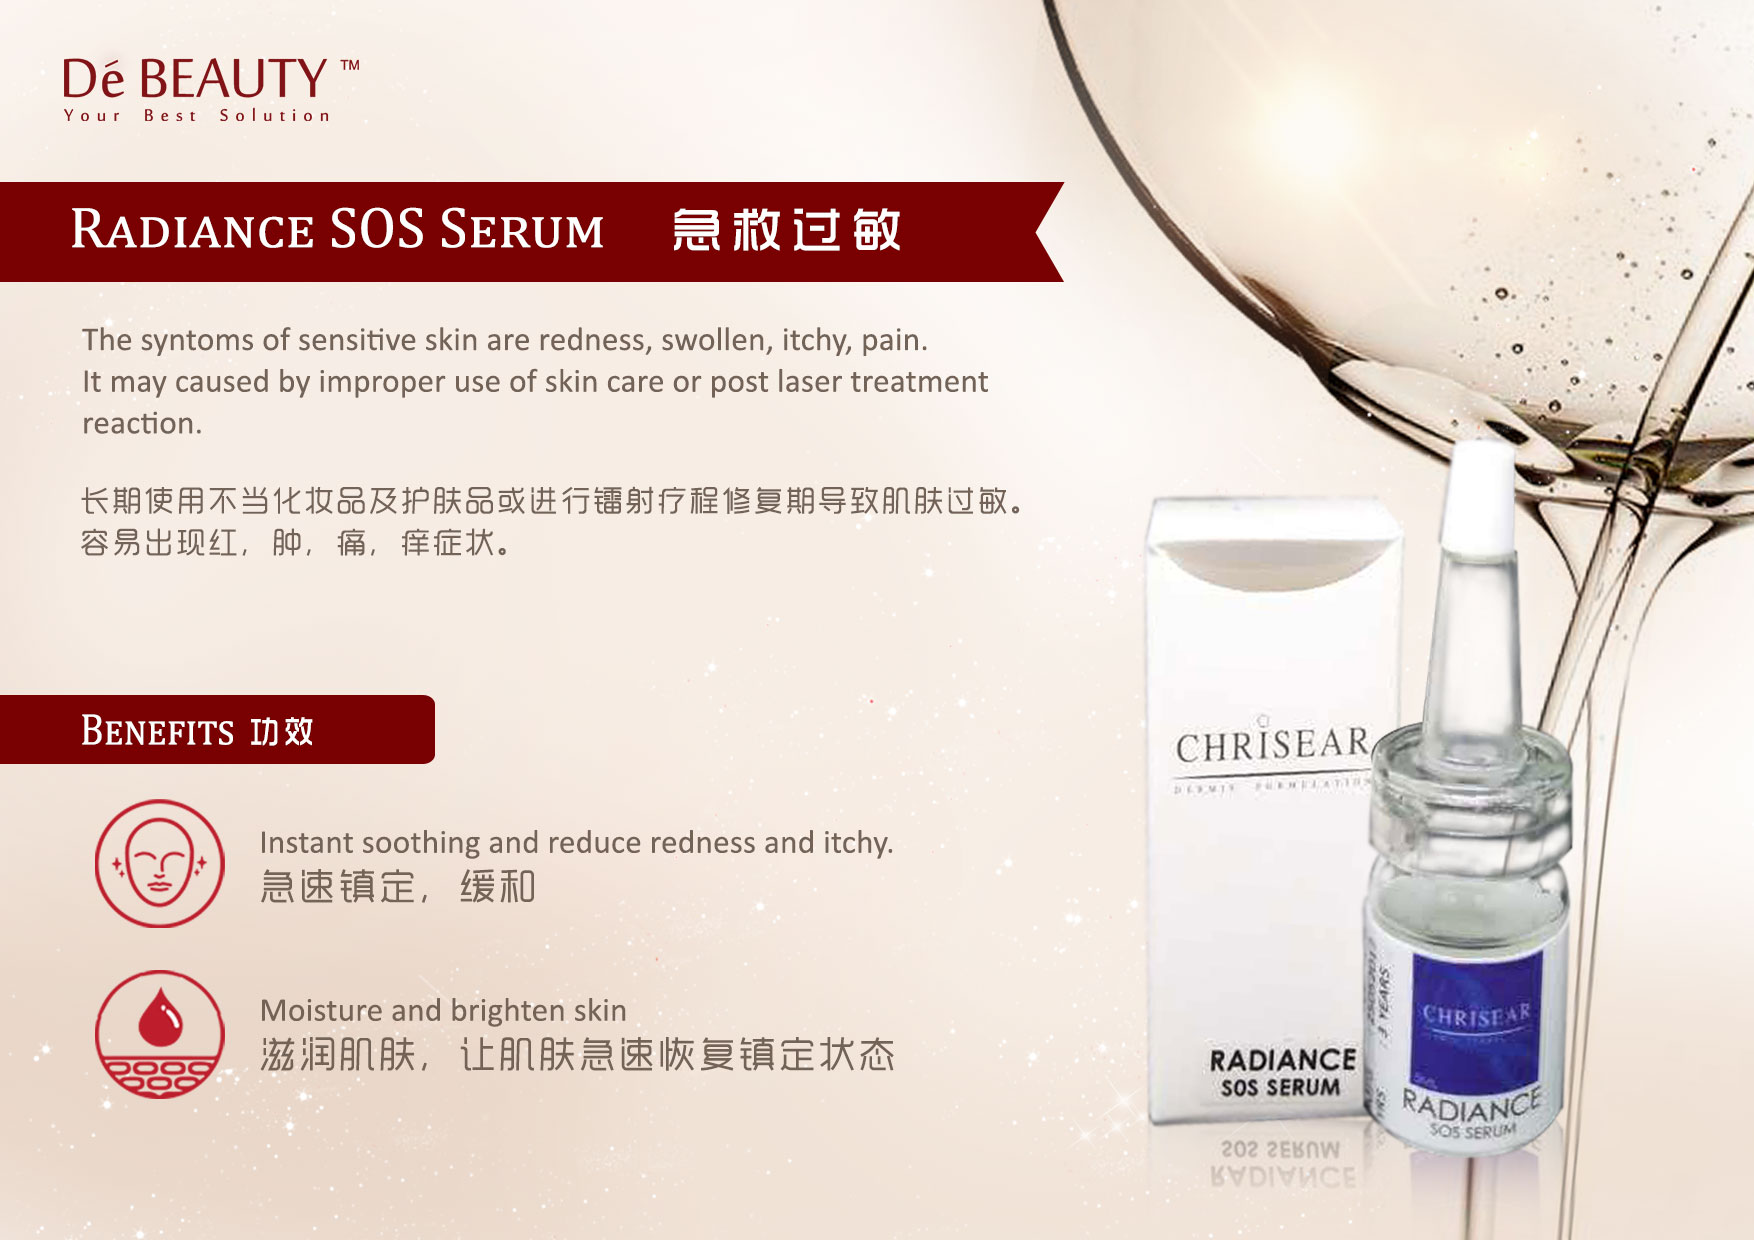 De Beauty Chrisear Radiance SOS Serum